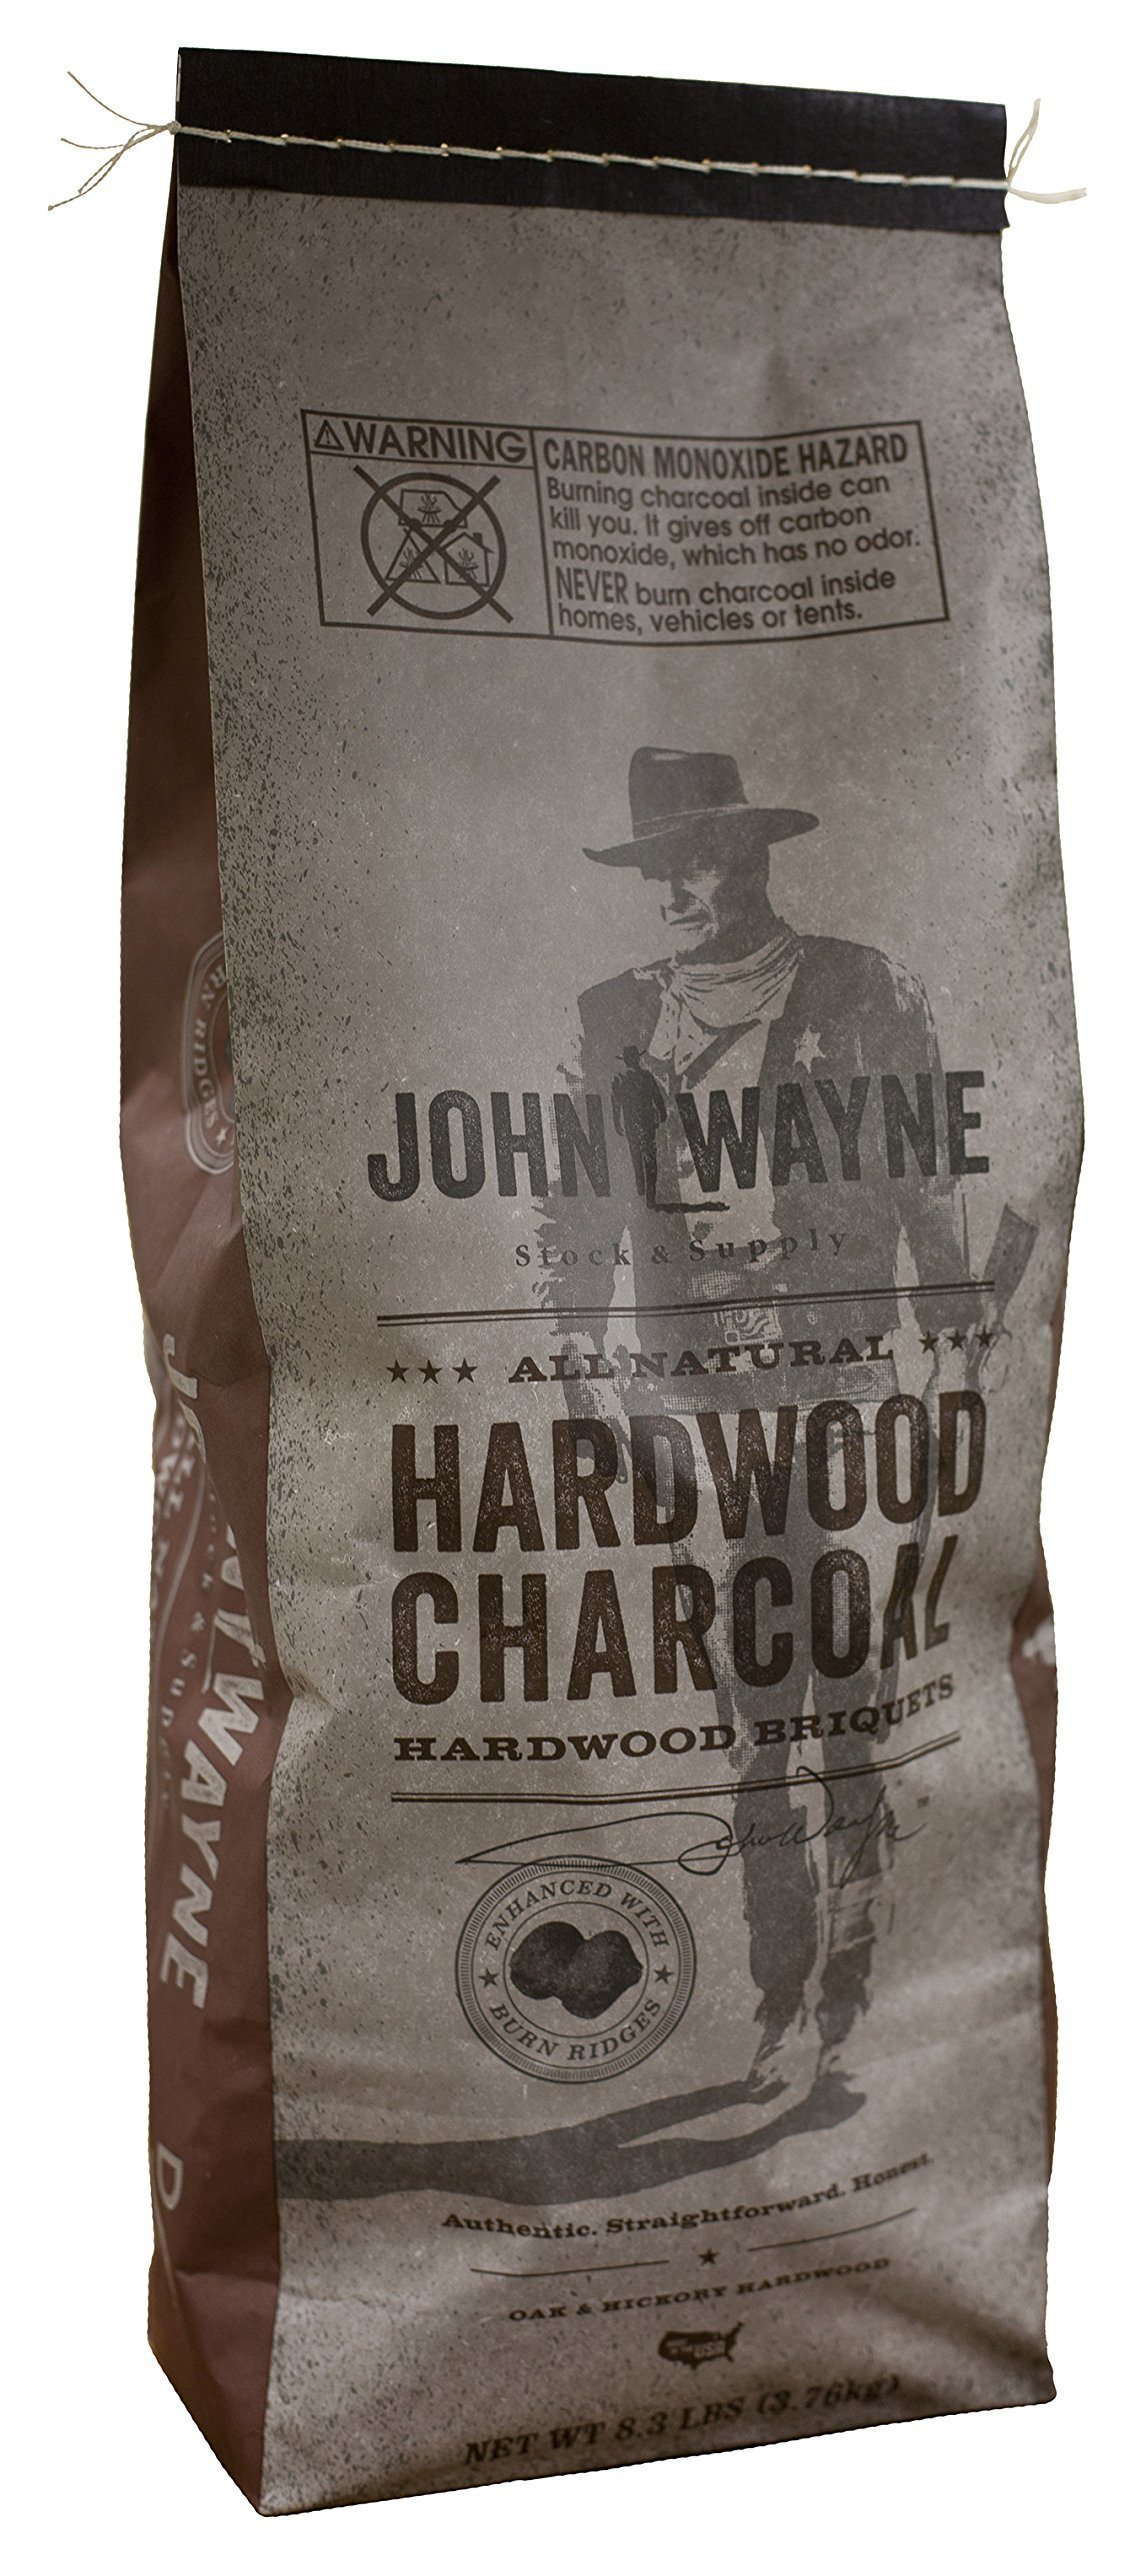 Fire & Flavor ''John Wayne'' Charcoal Hardwood Briquets 8.3lbs, Pack of 6